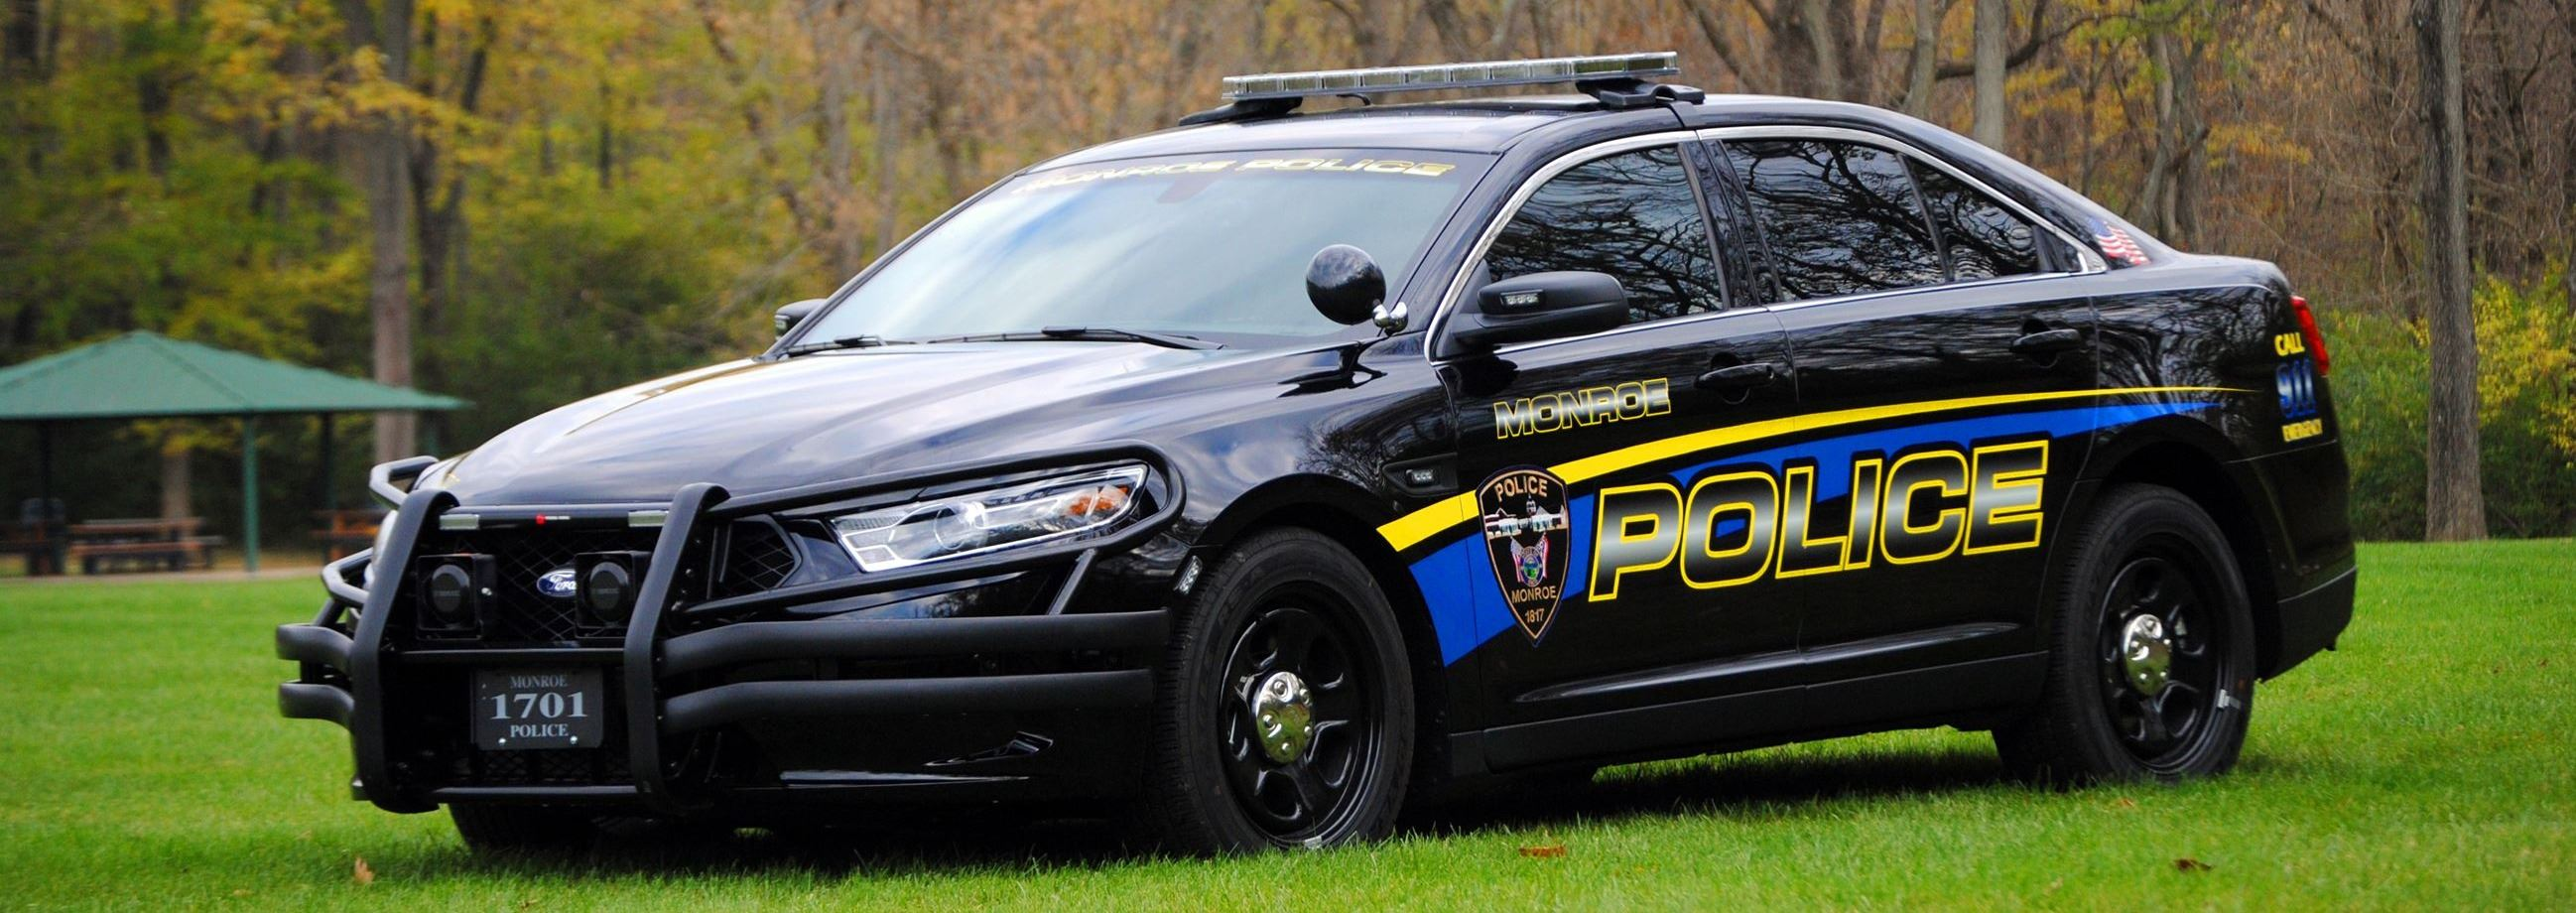 Image of Monroe Police Car